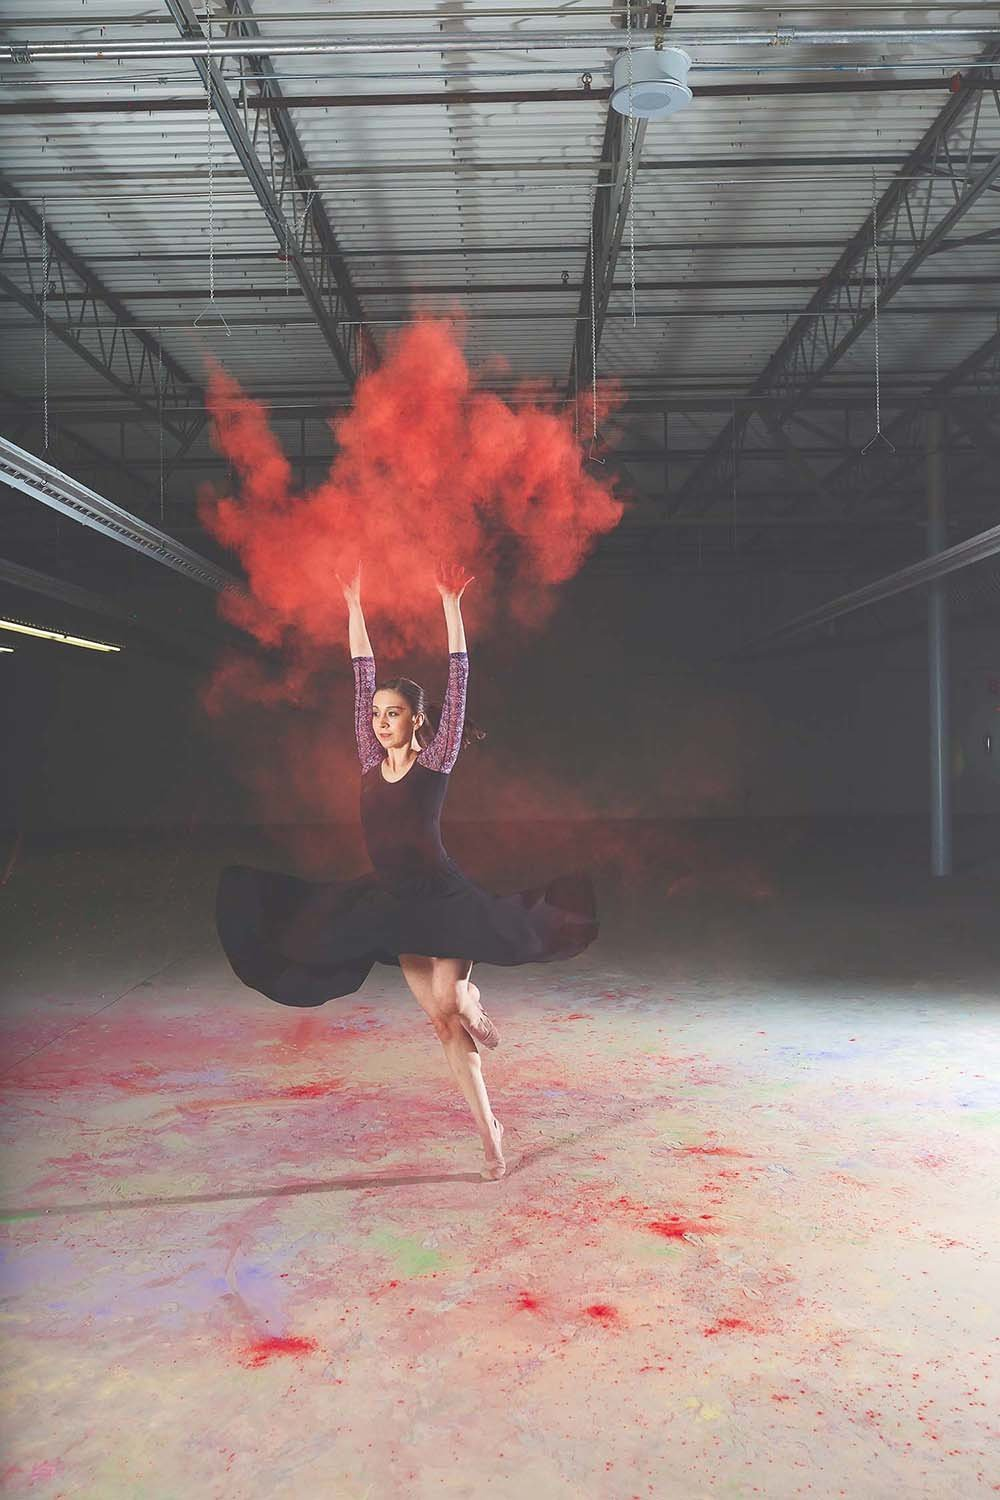 red-holi-powder-dancer-inspiration-breaking-tradition-photography-jacksonville-fl